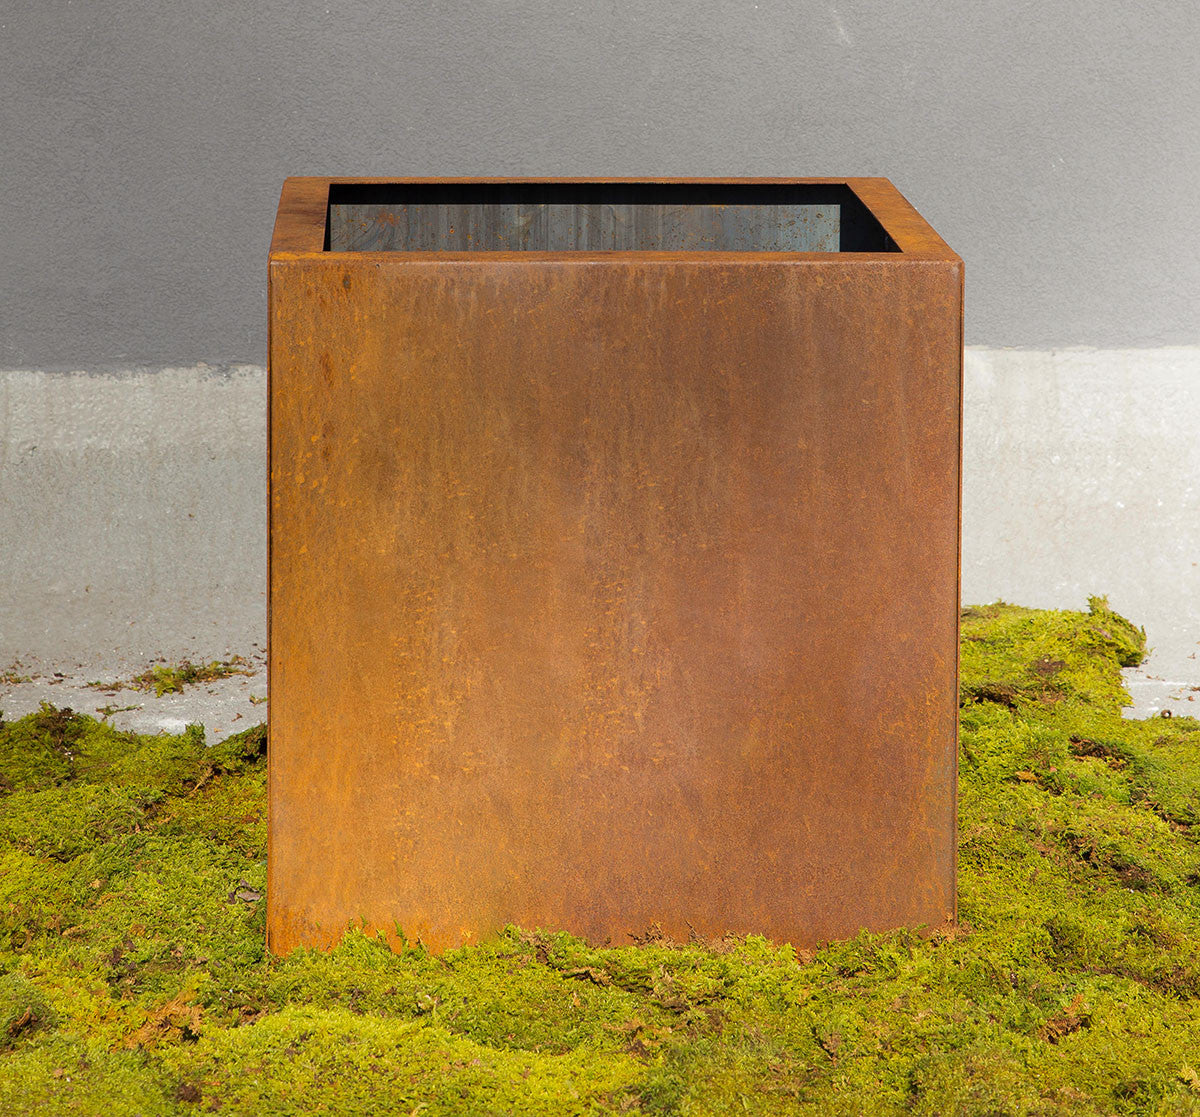 Planterscape Park Row Square CorTen Steel Planter